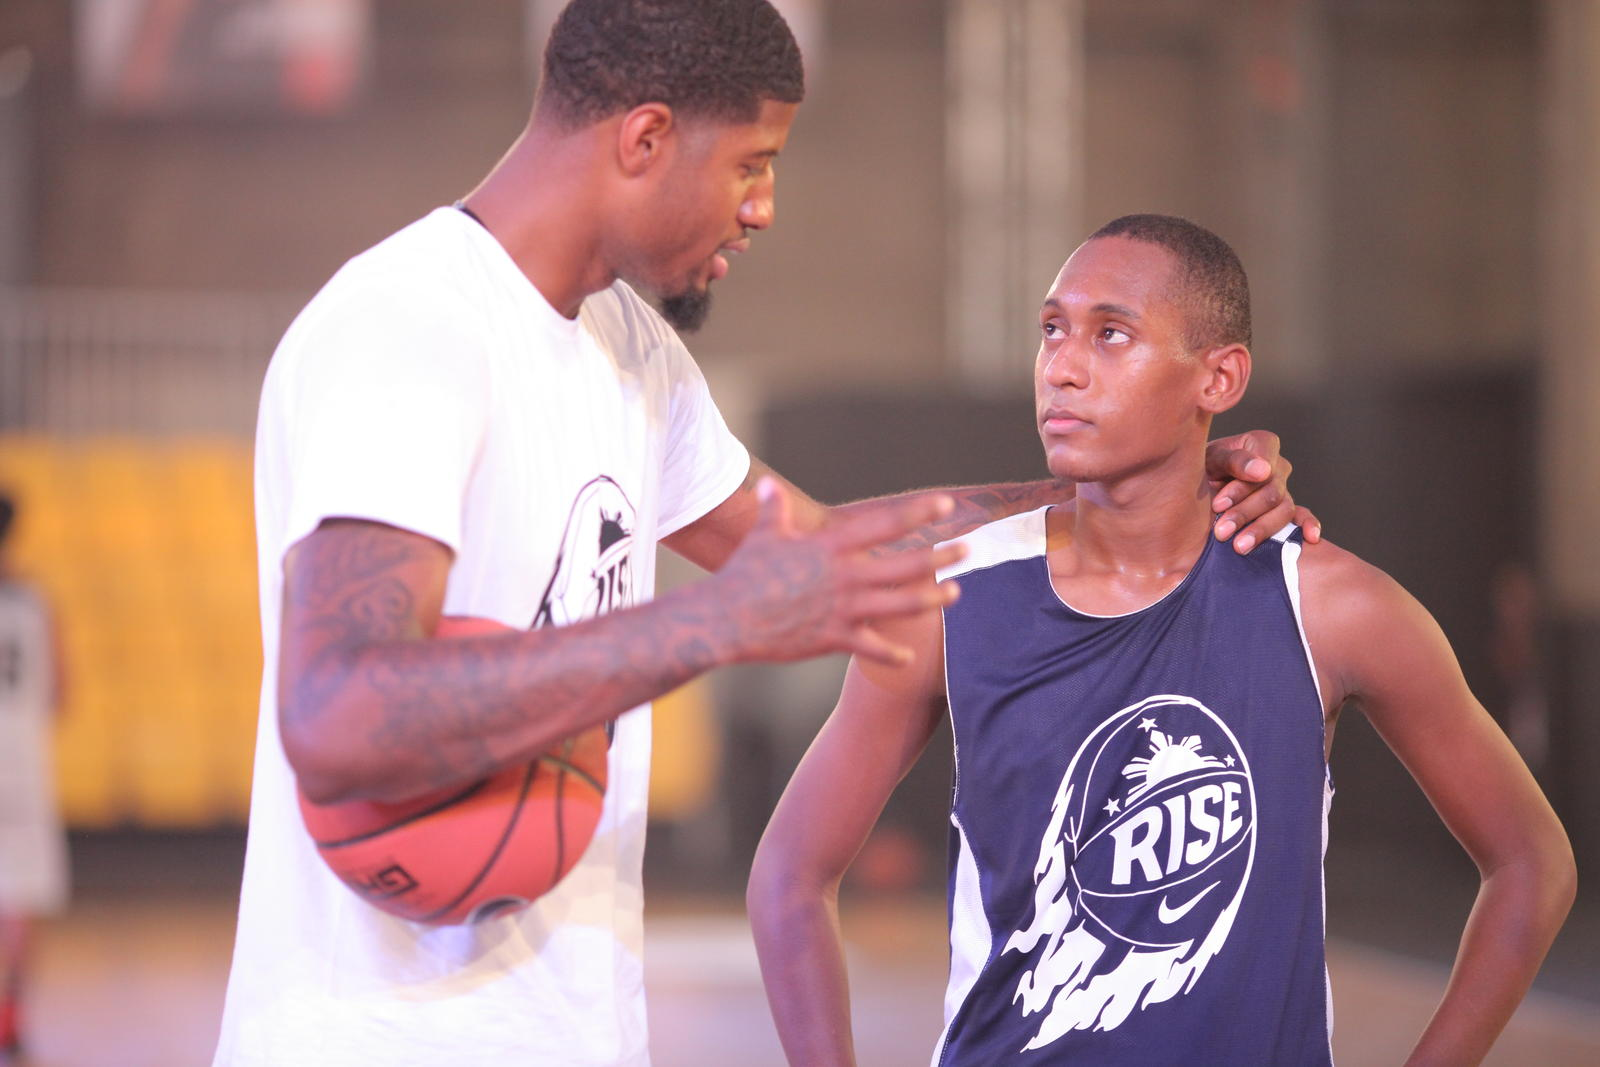 Paul George Kicks off Nike s Summer Basketball Tours - Nike News 4c425932d